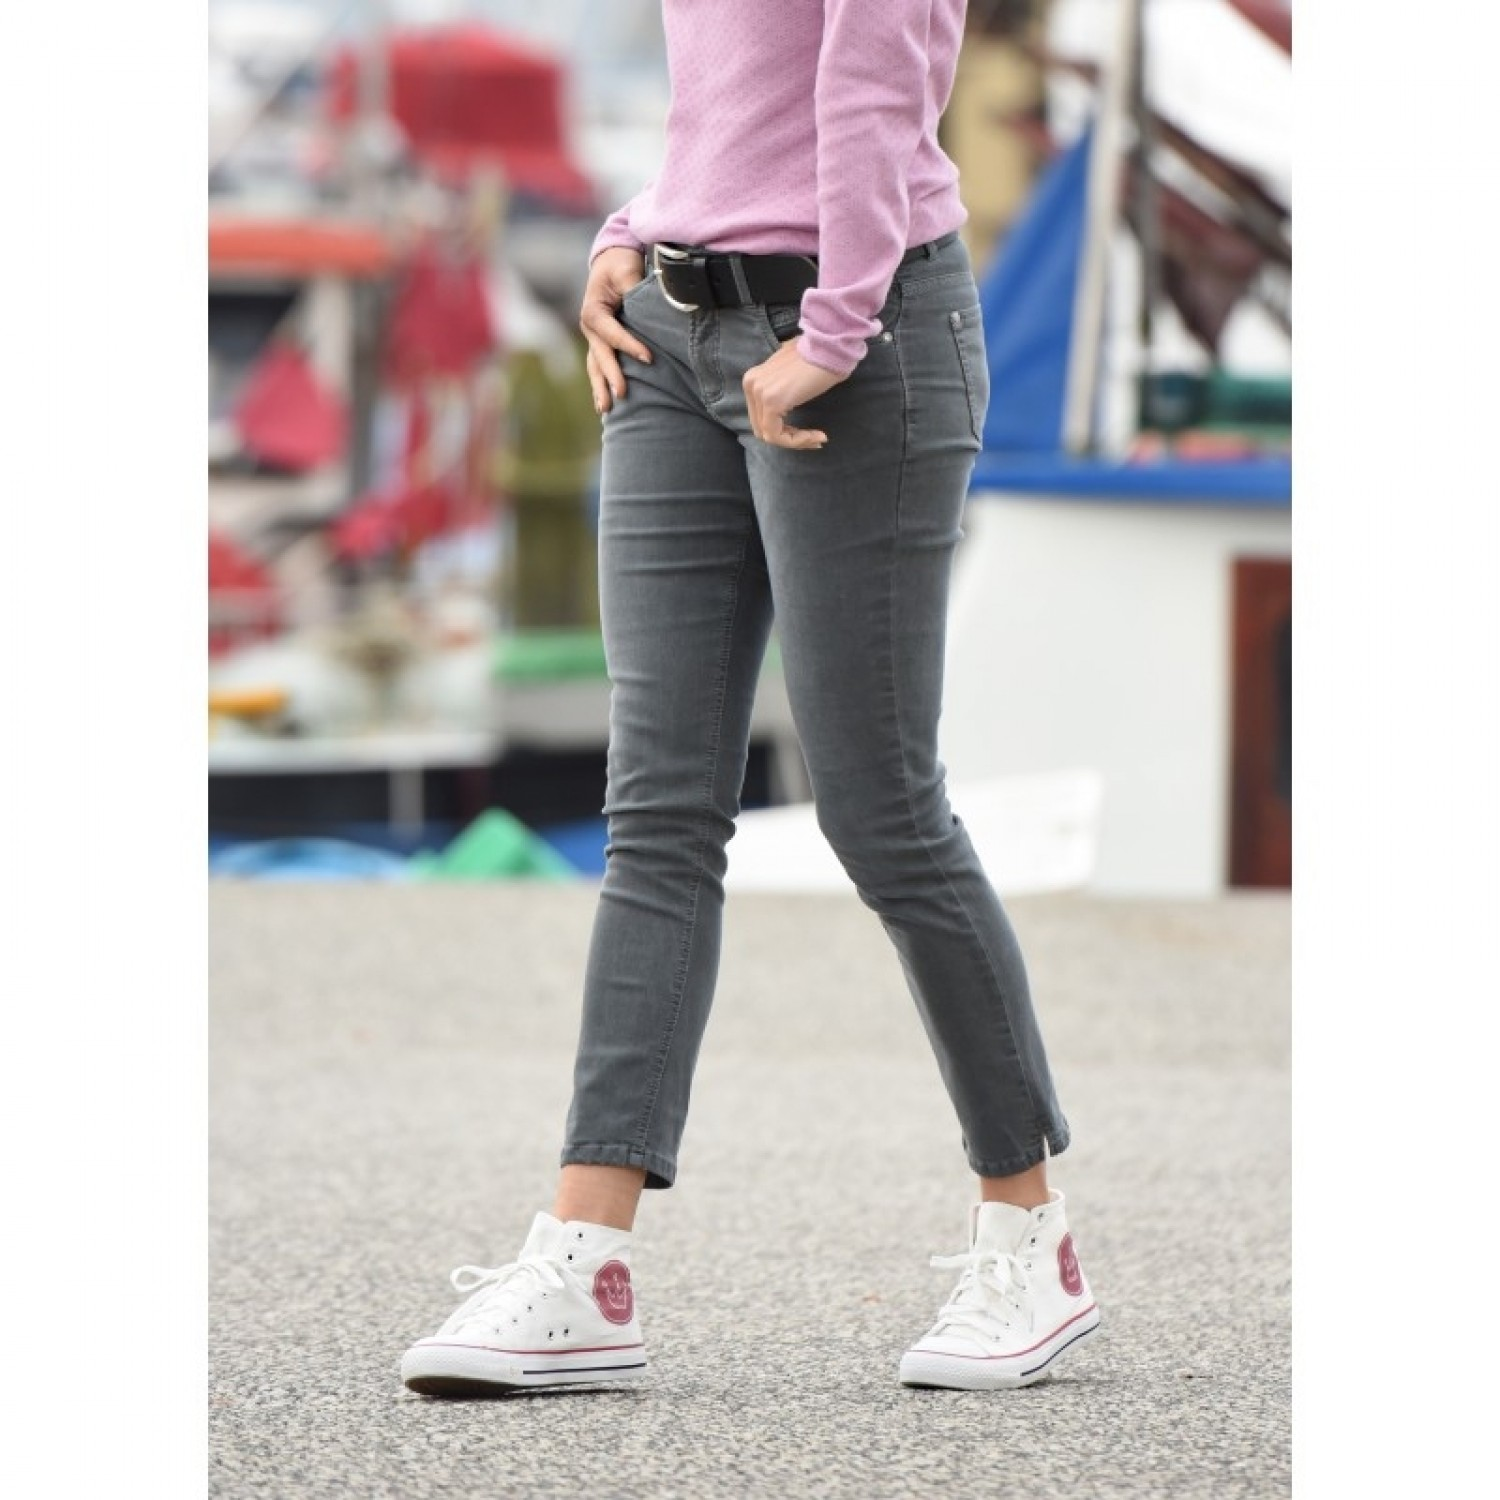 bloomers ankle-length grey women jeans of eco cotton